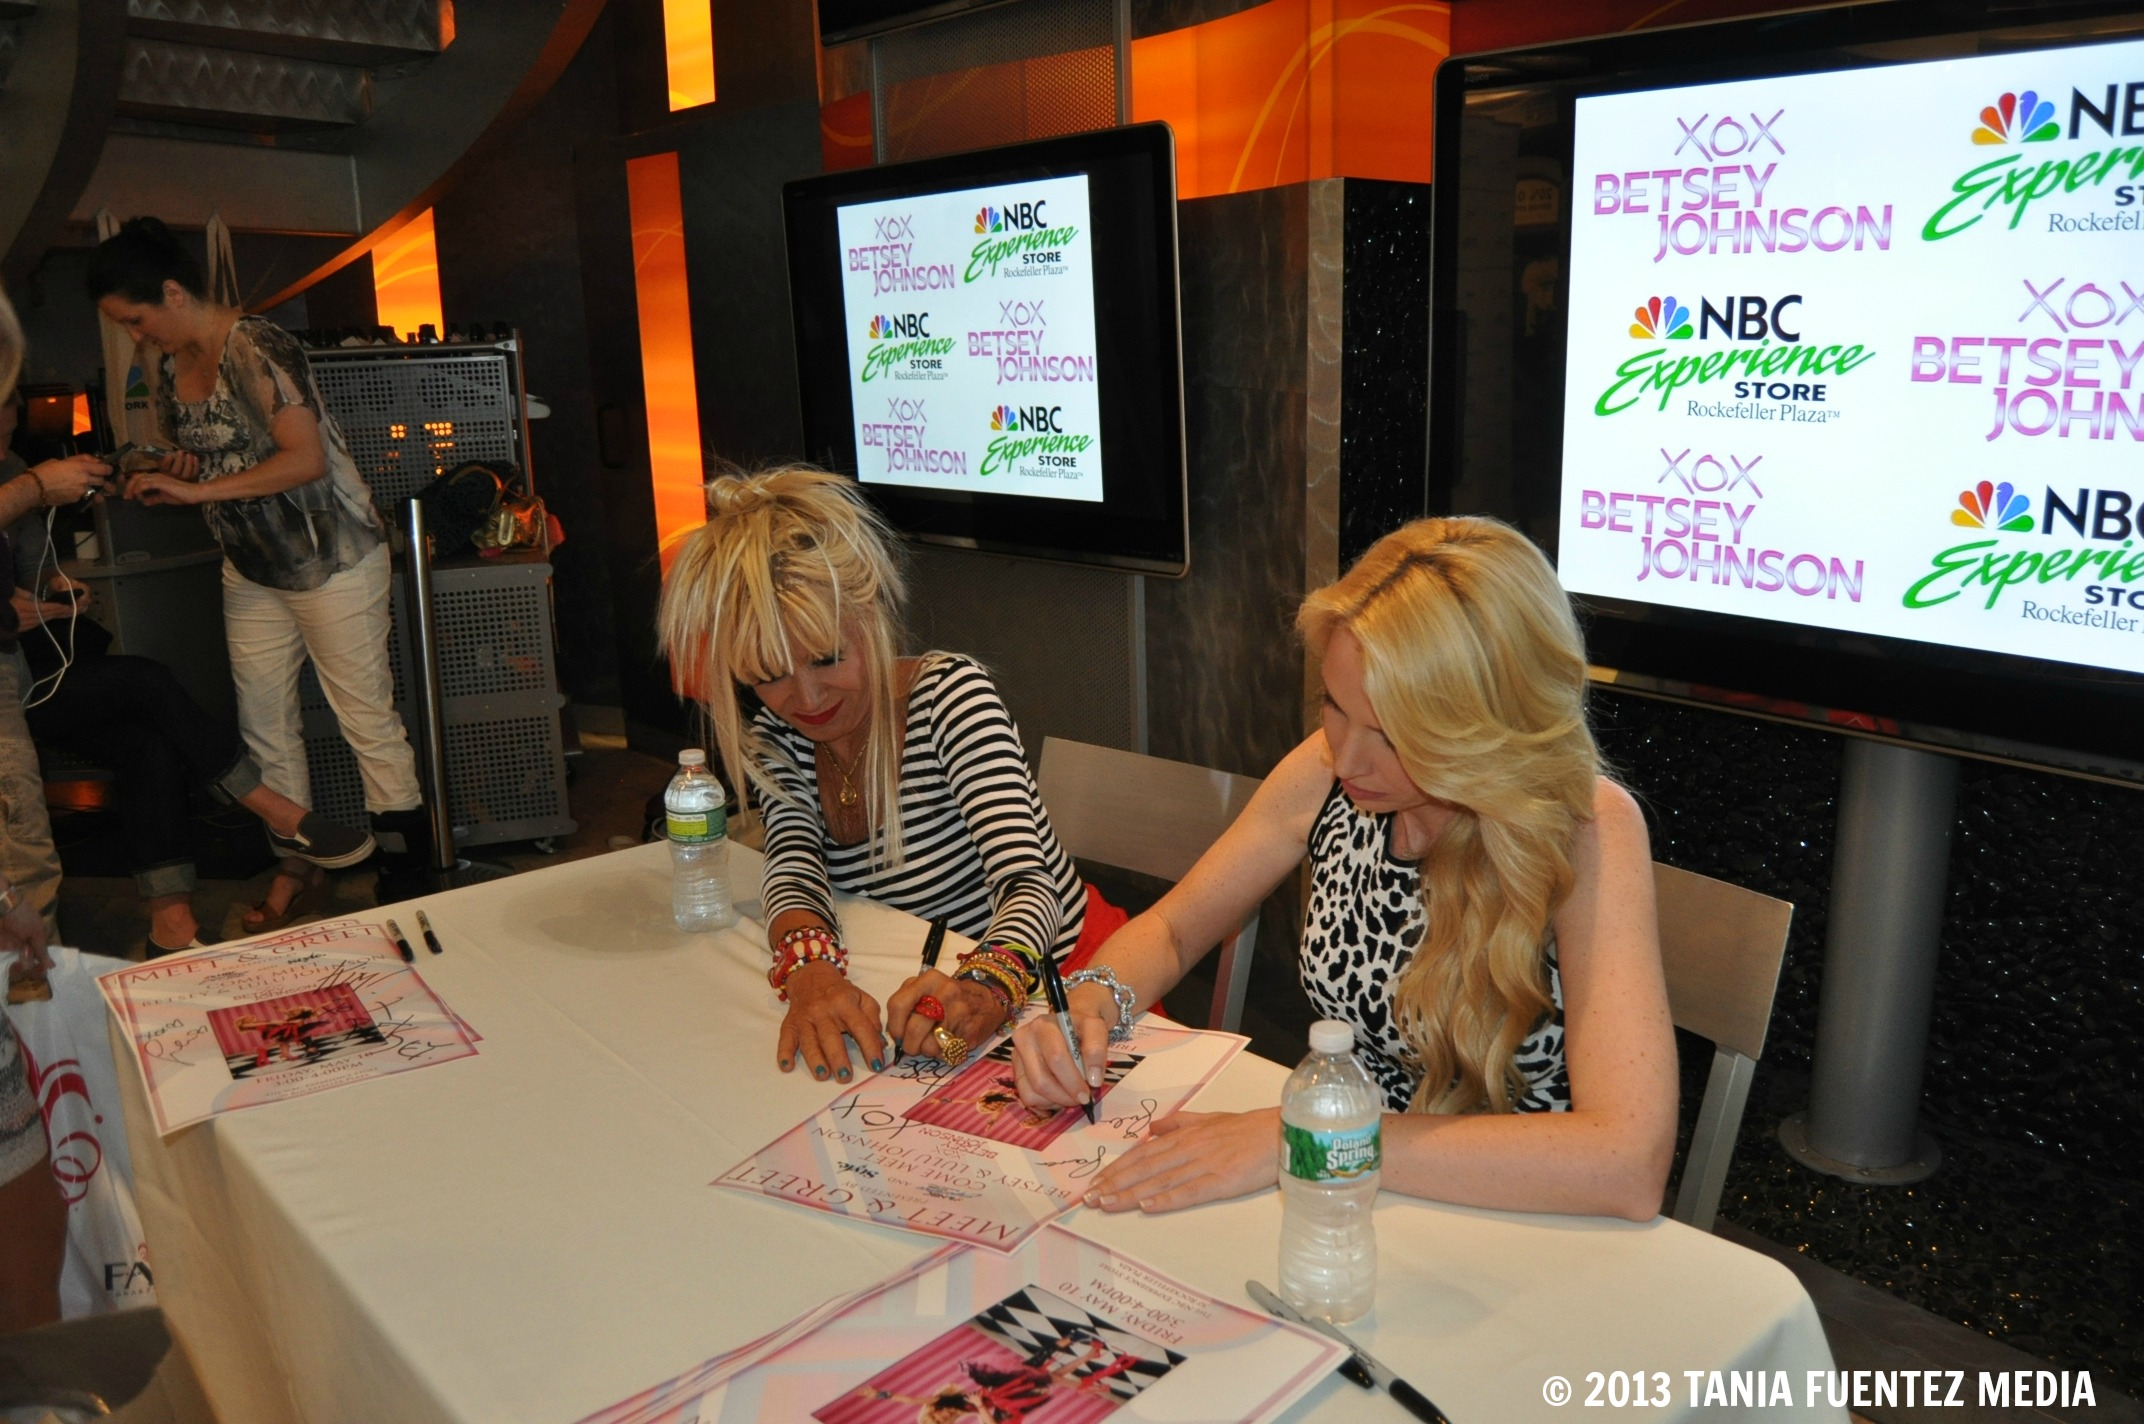 Johnson betsey files for bankruptcy forum buzz fotos